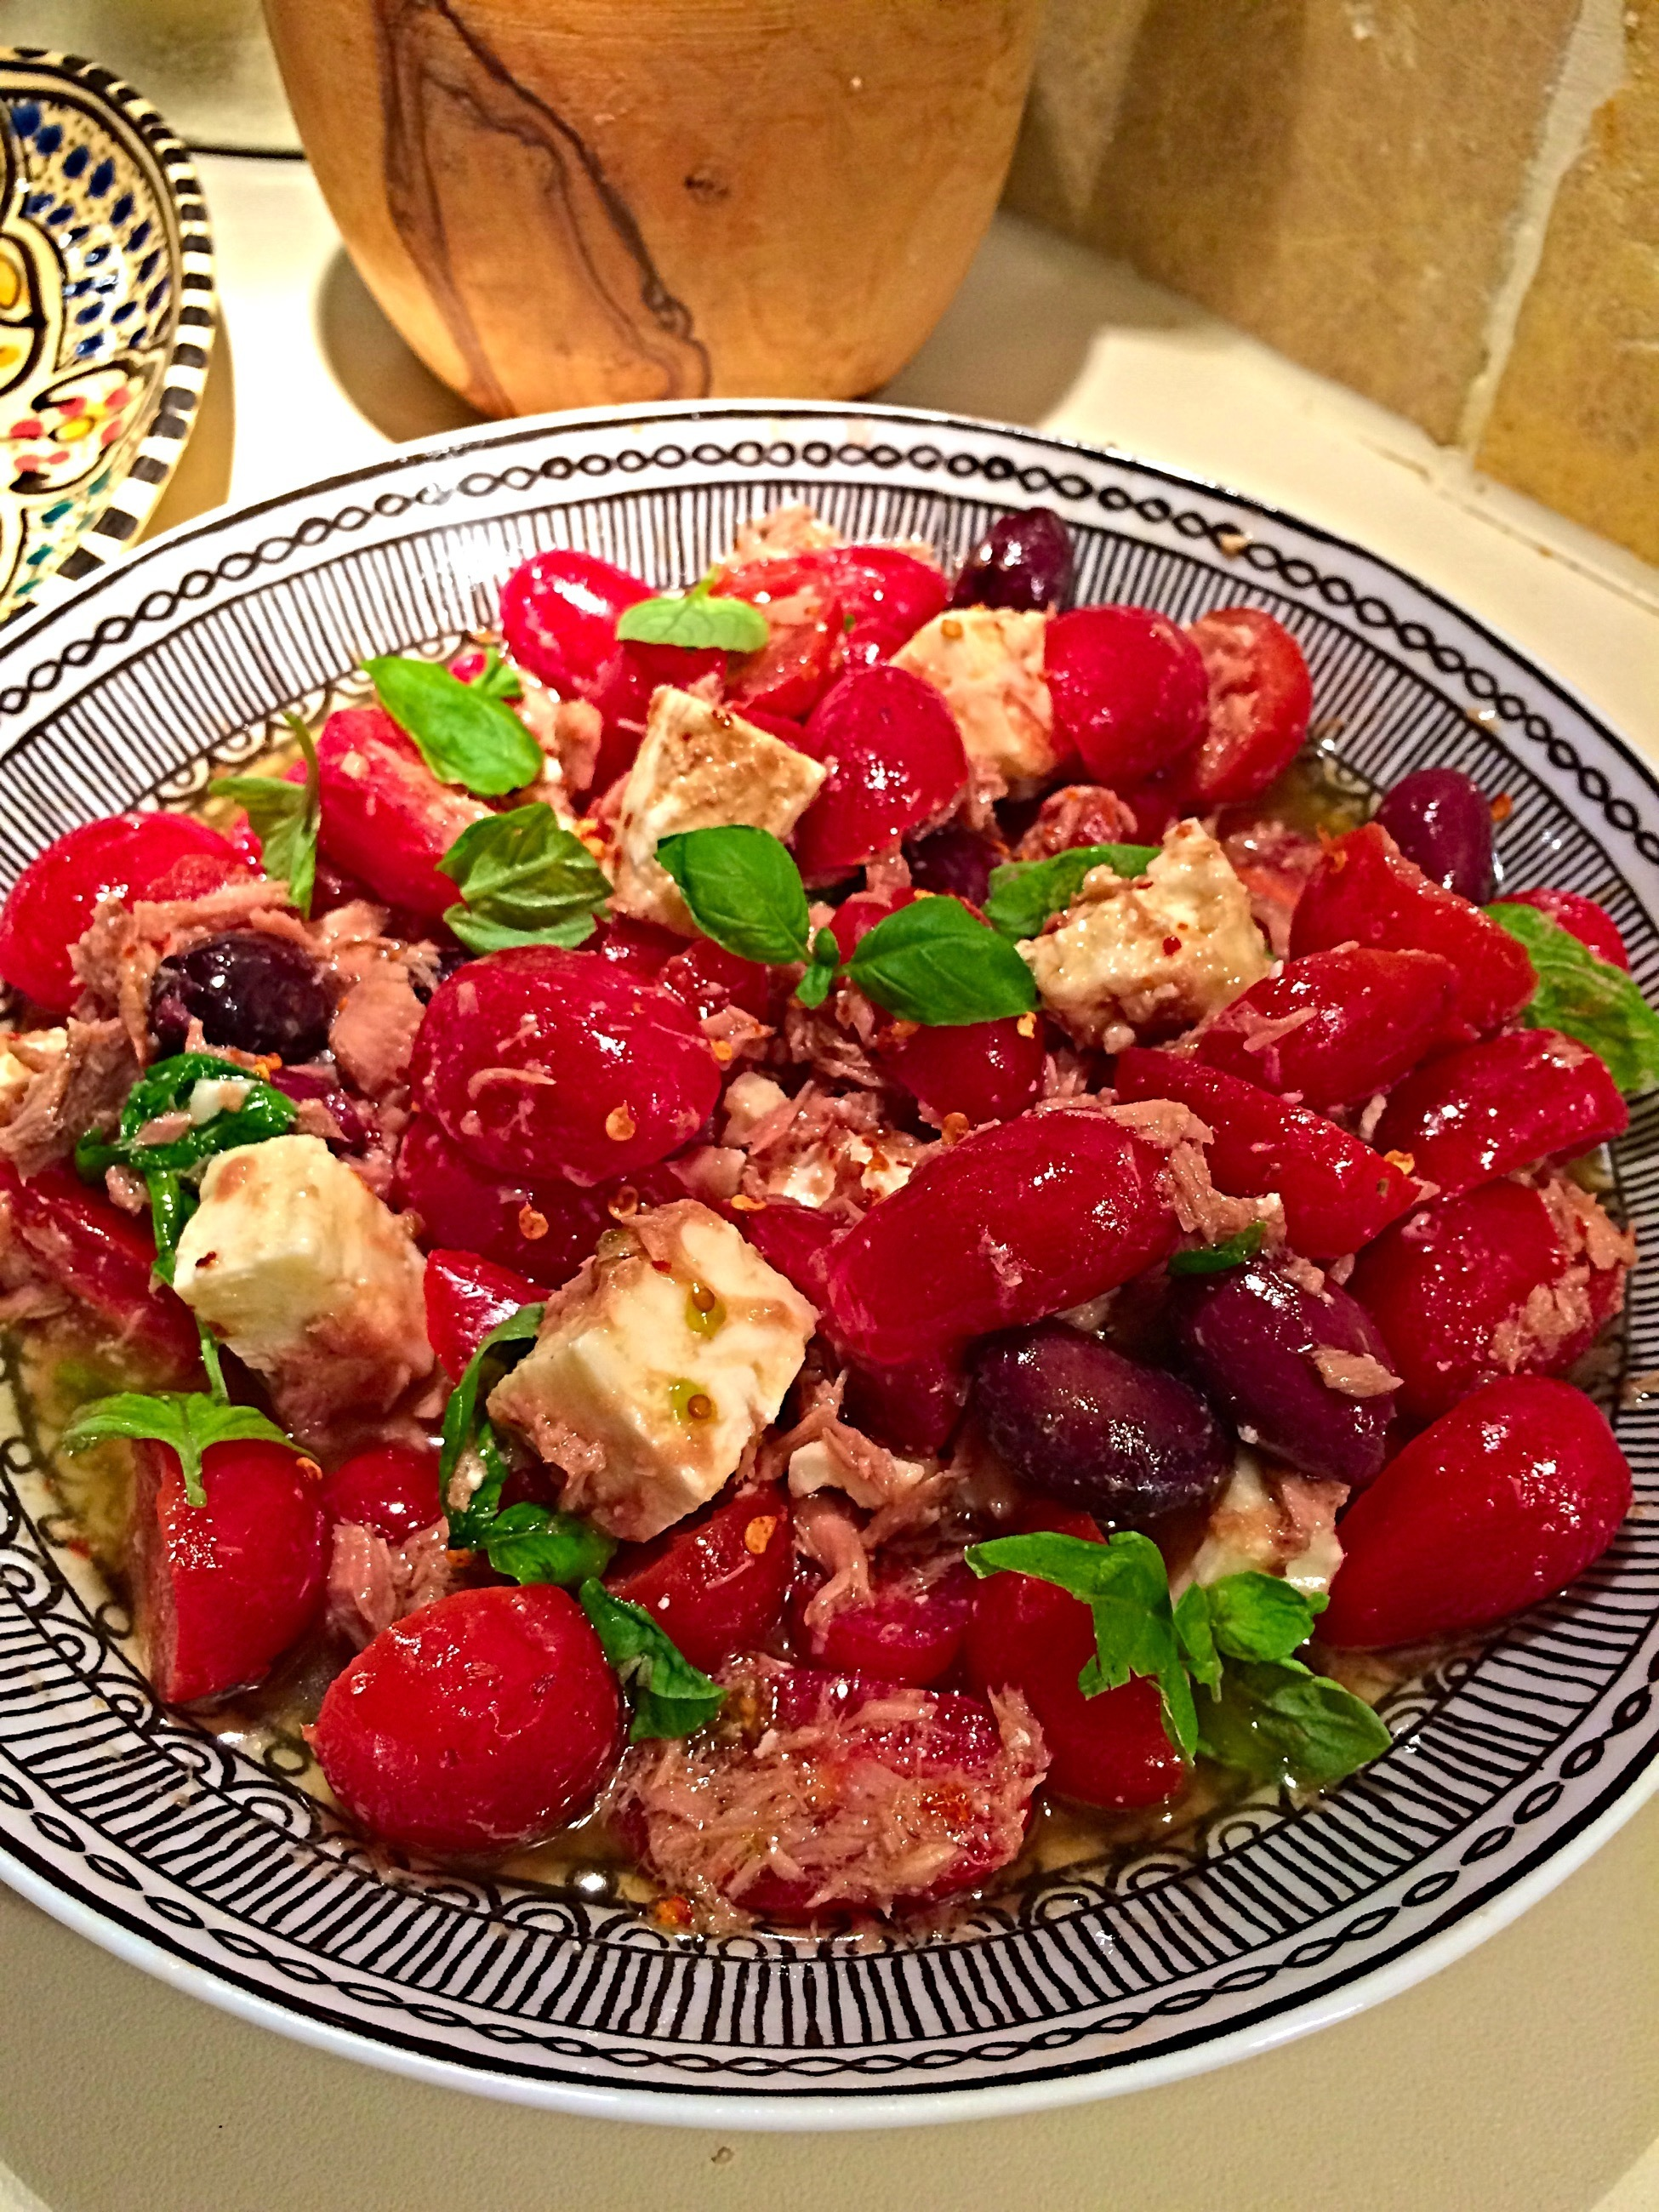 tomato salad with feta cheese and basil